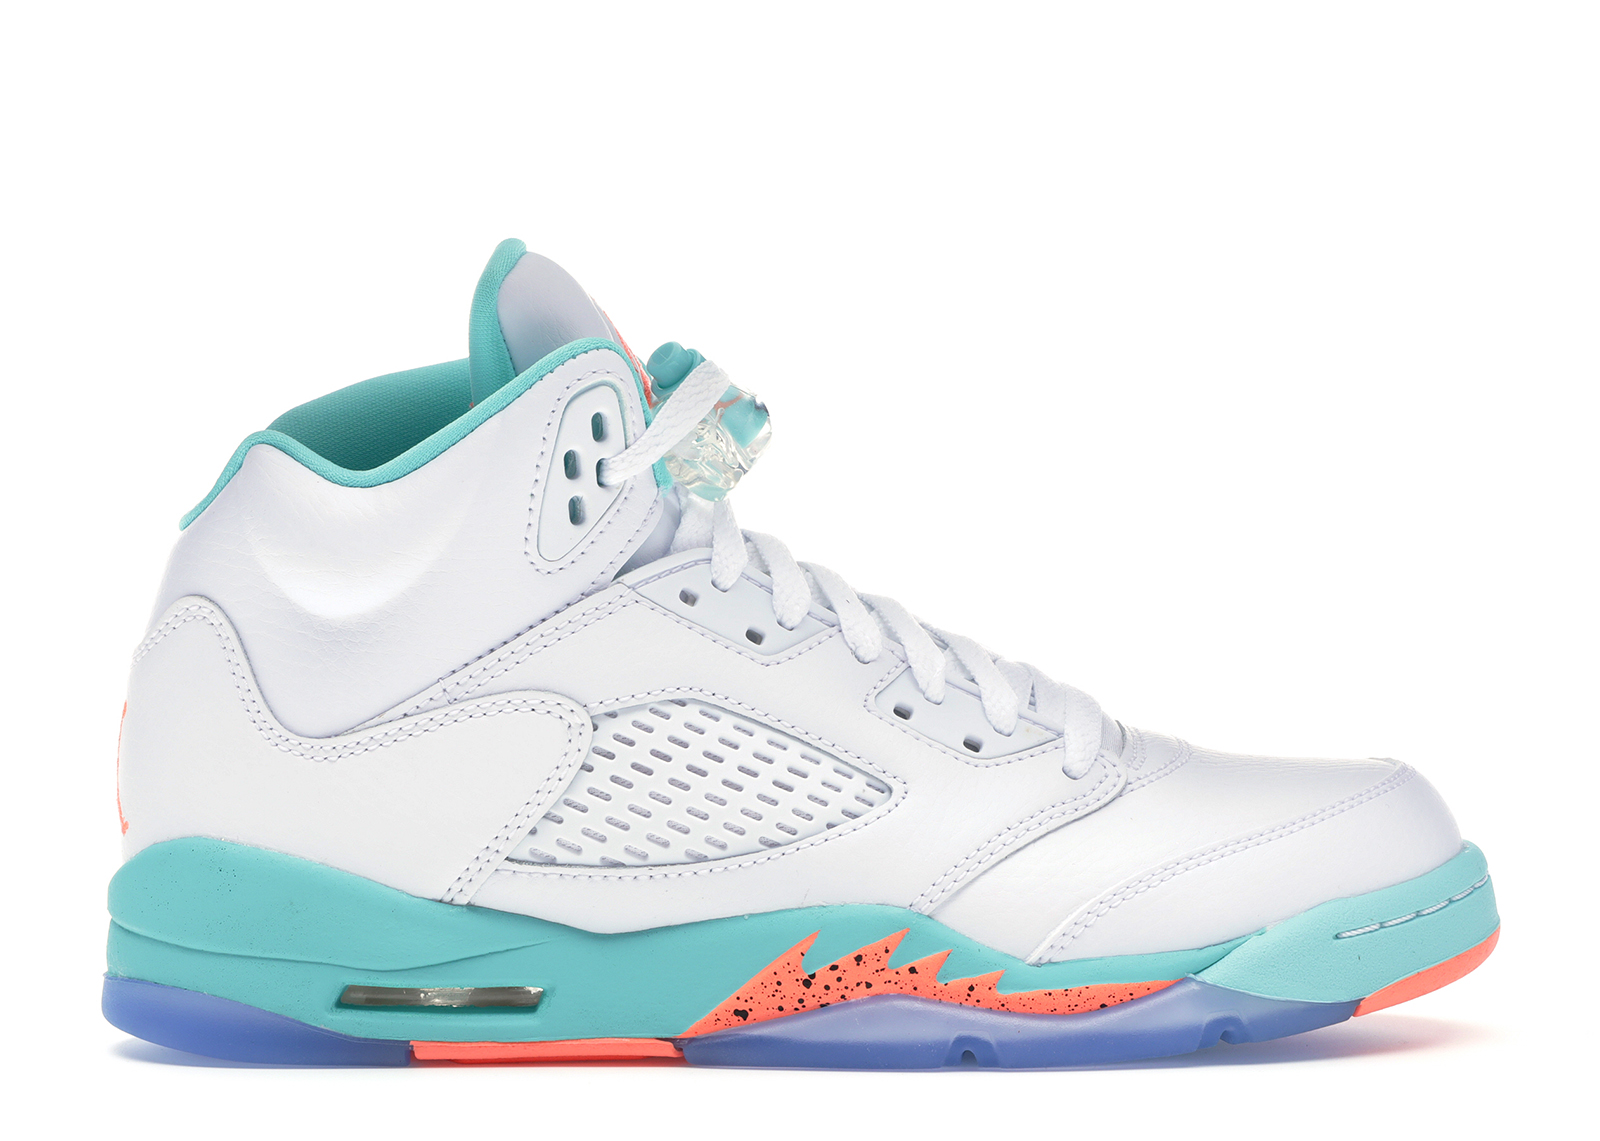 c9a0faf0ada7e5 ... australia buy air jordan 5 shoes deadstock sneakers 8f488 05d2d